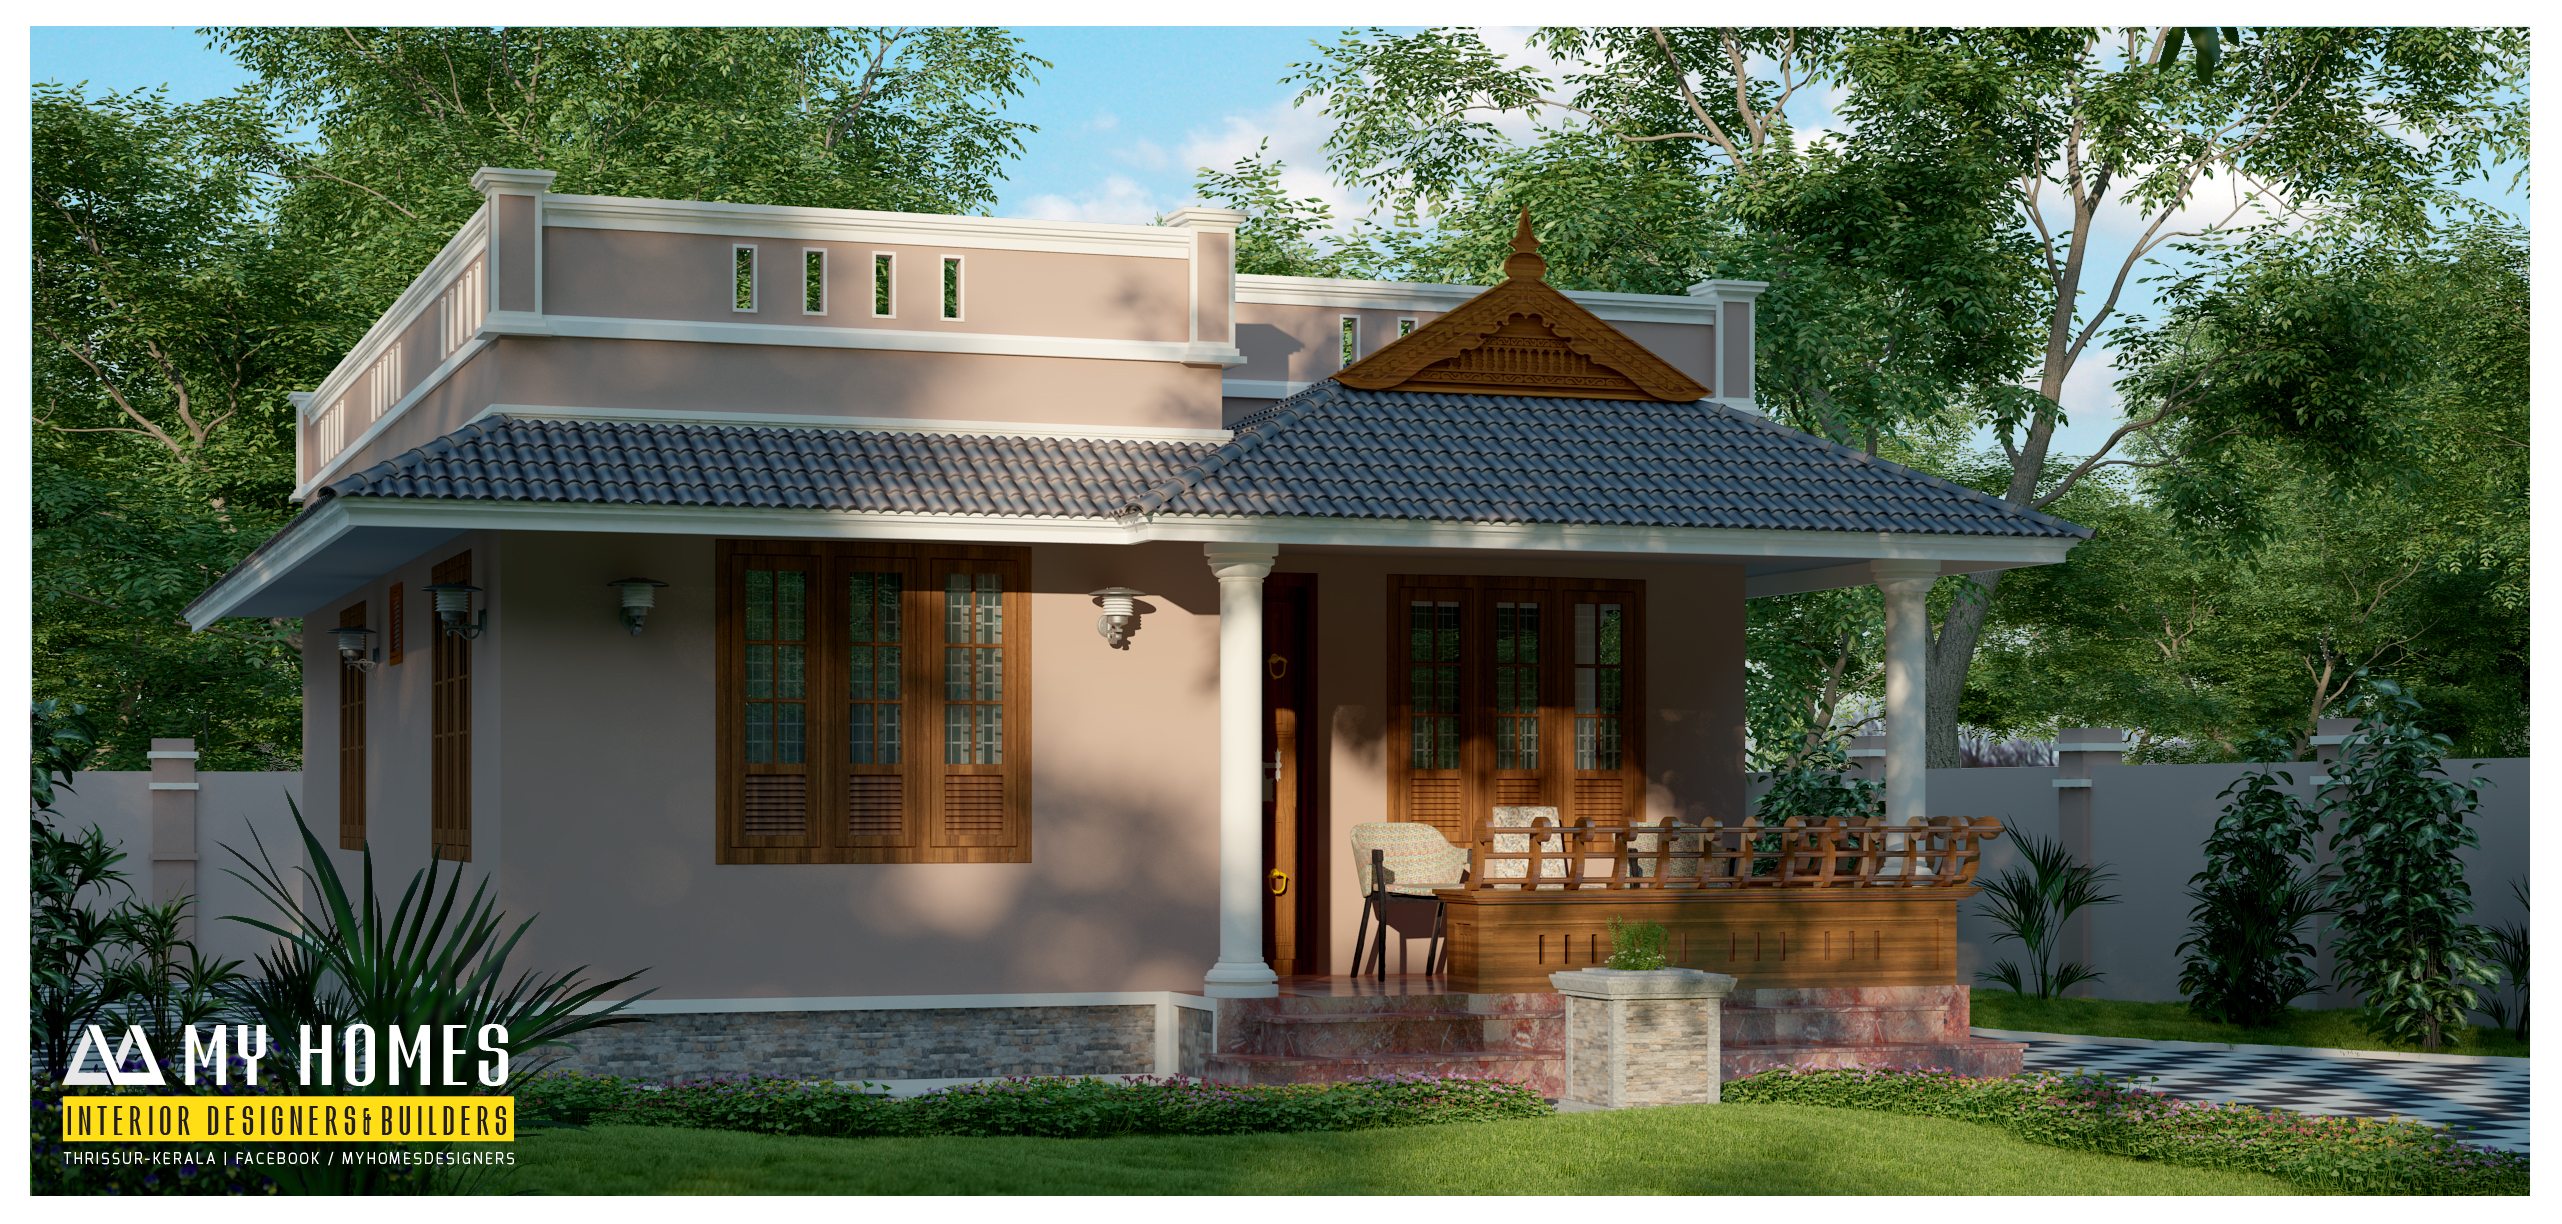 21 Low Budget Home Plan For Every Homes Styles - House Plans